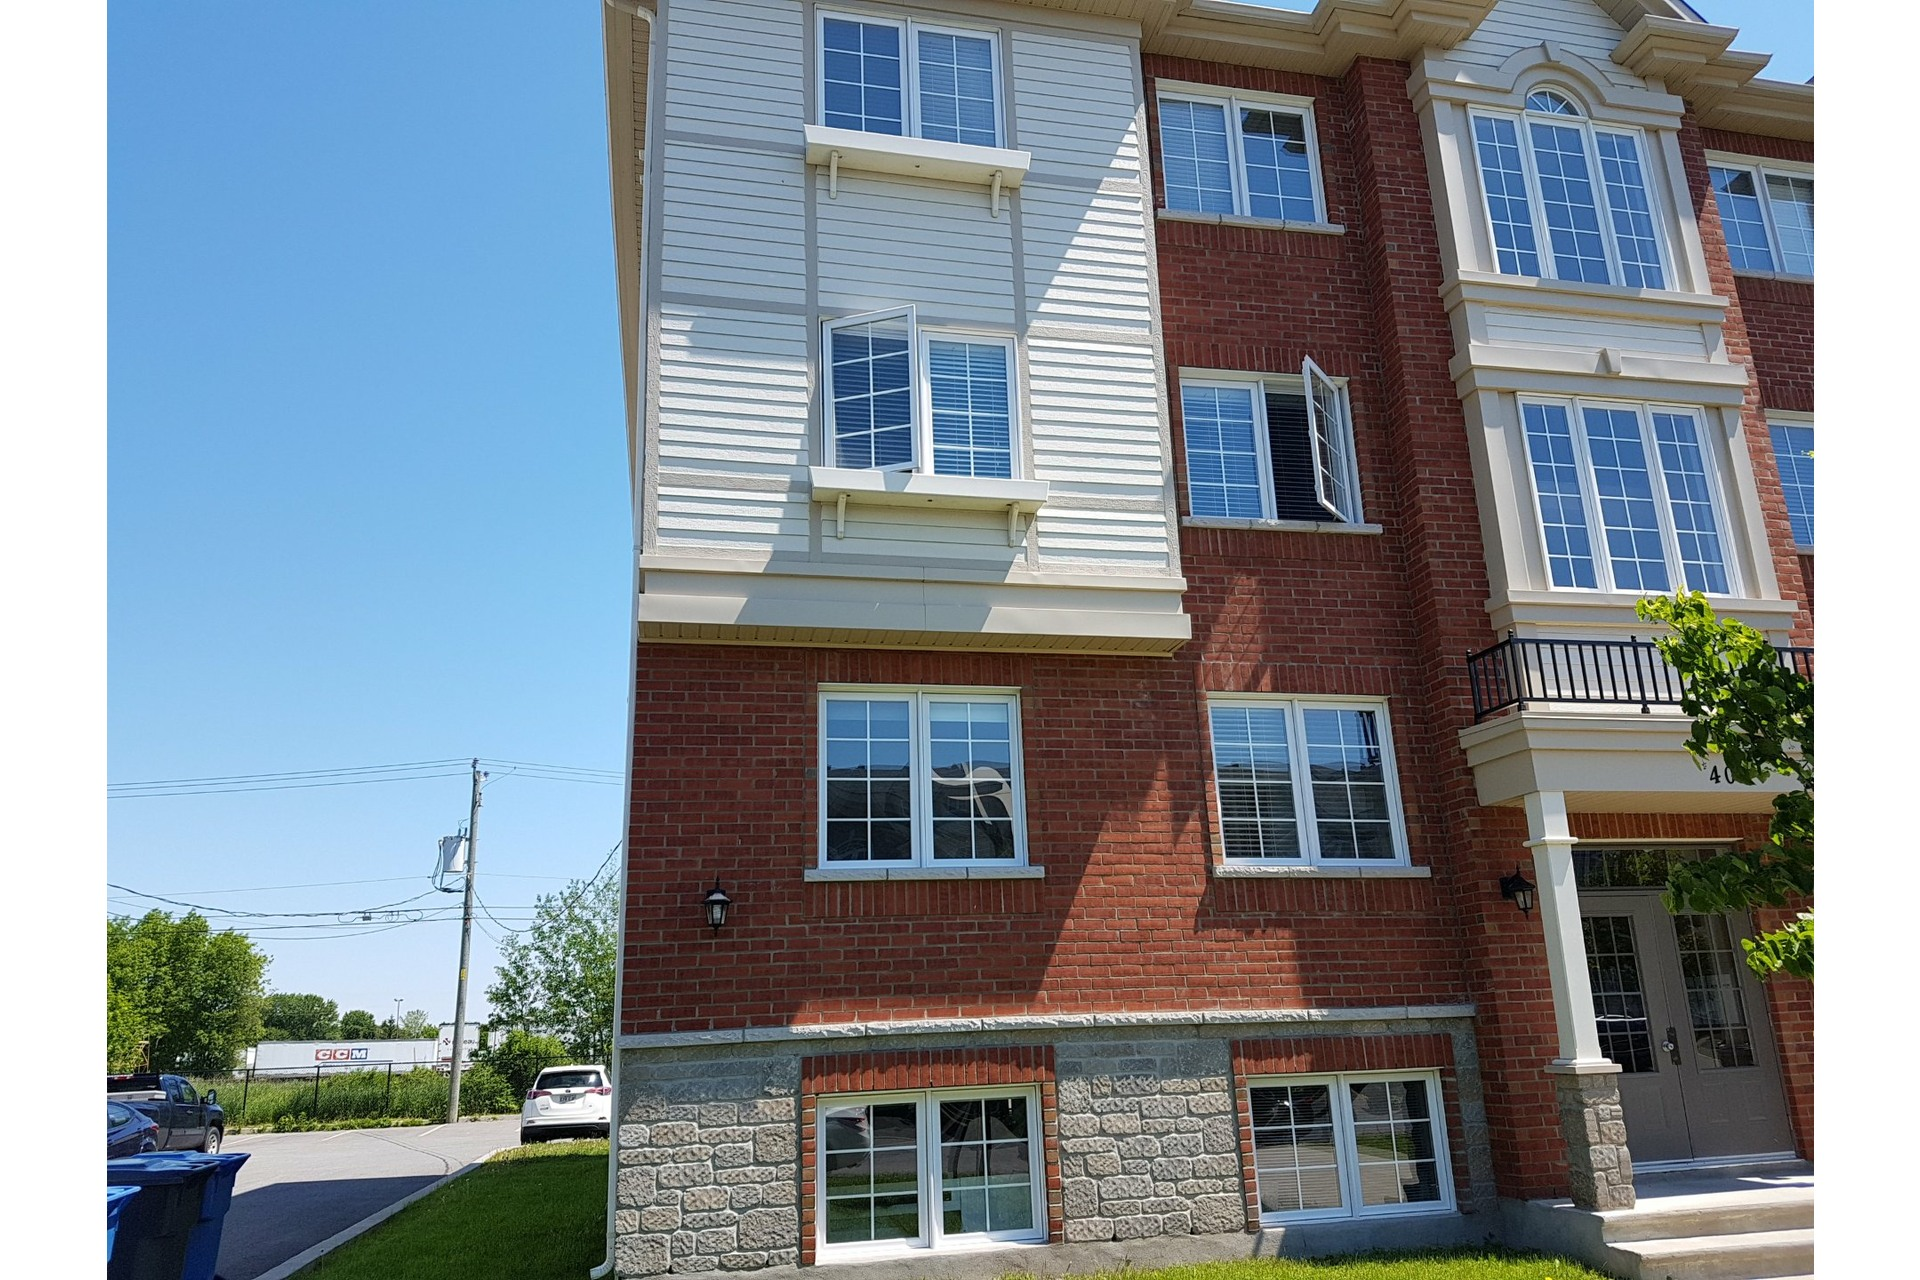 image 17 - Apartment For sale Vaudreuil-Dorion - 6 rooms